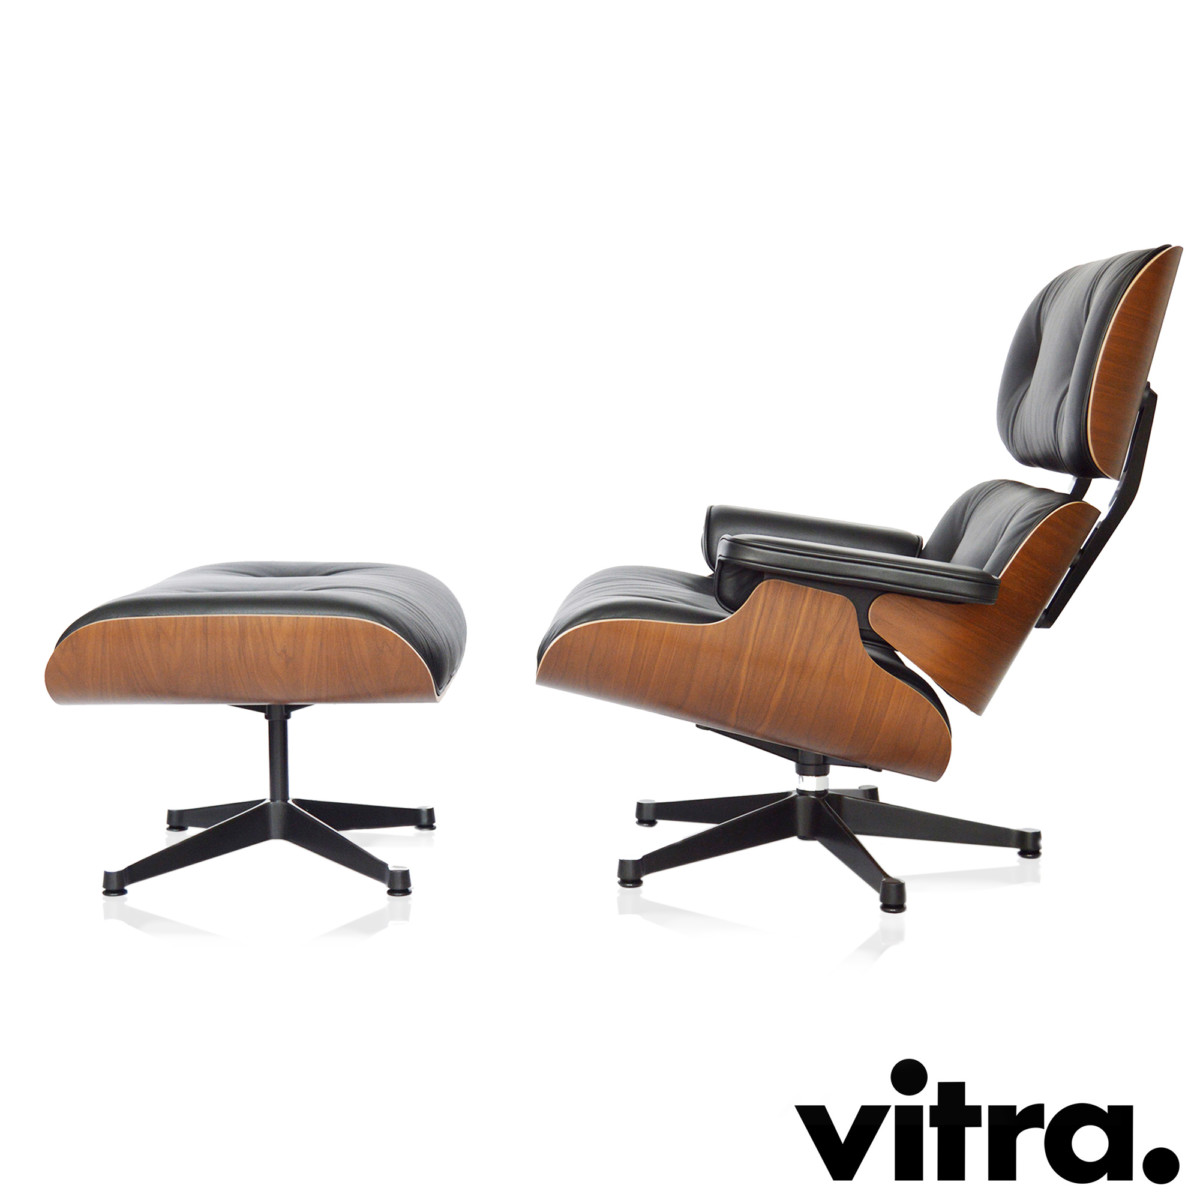 Amazing Vitra Eames Lounge Chair Xl Ottoman Nussbaum Short Links Chair Design For Home Short Linksinfo